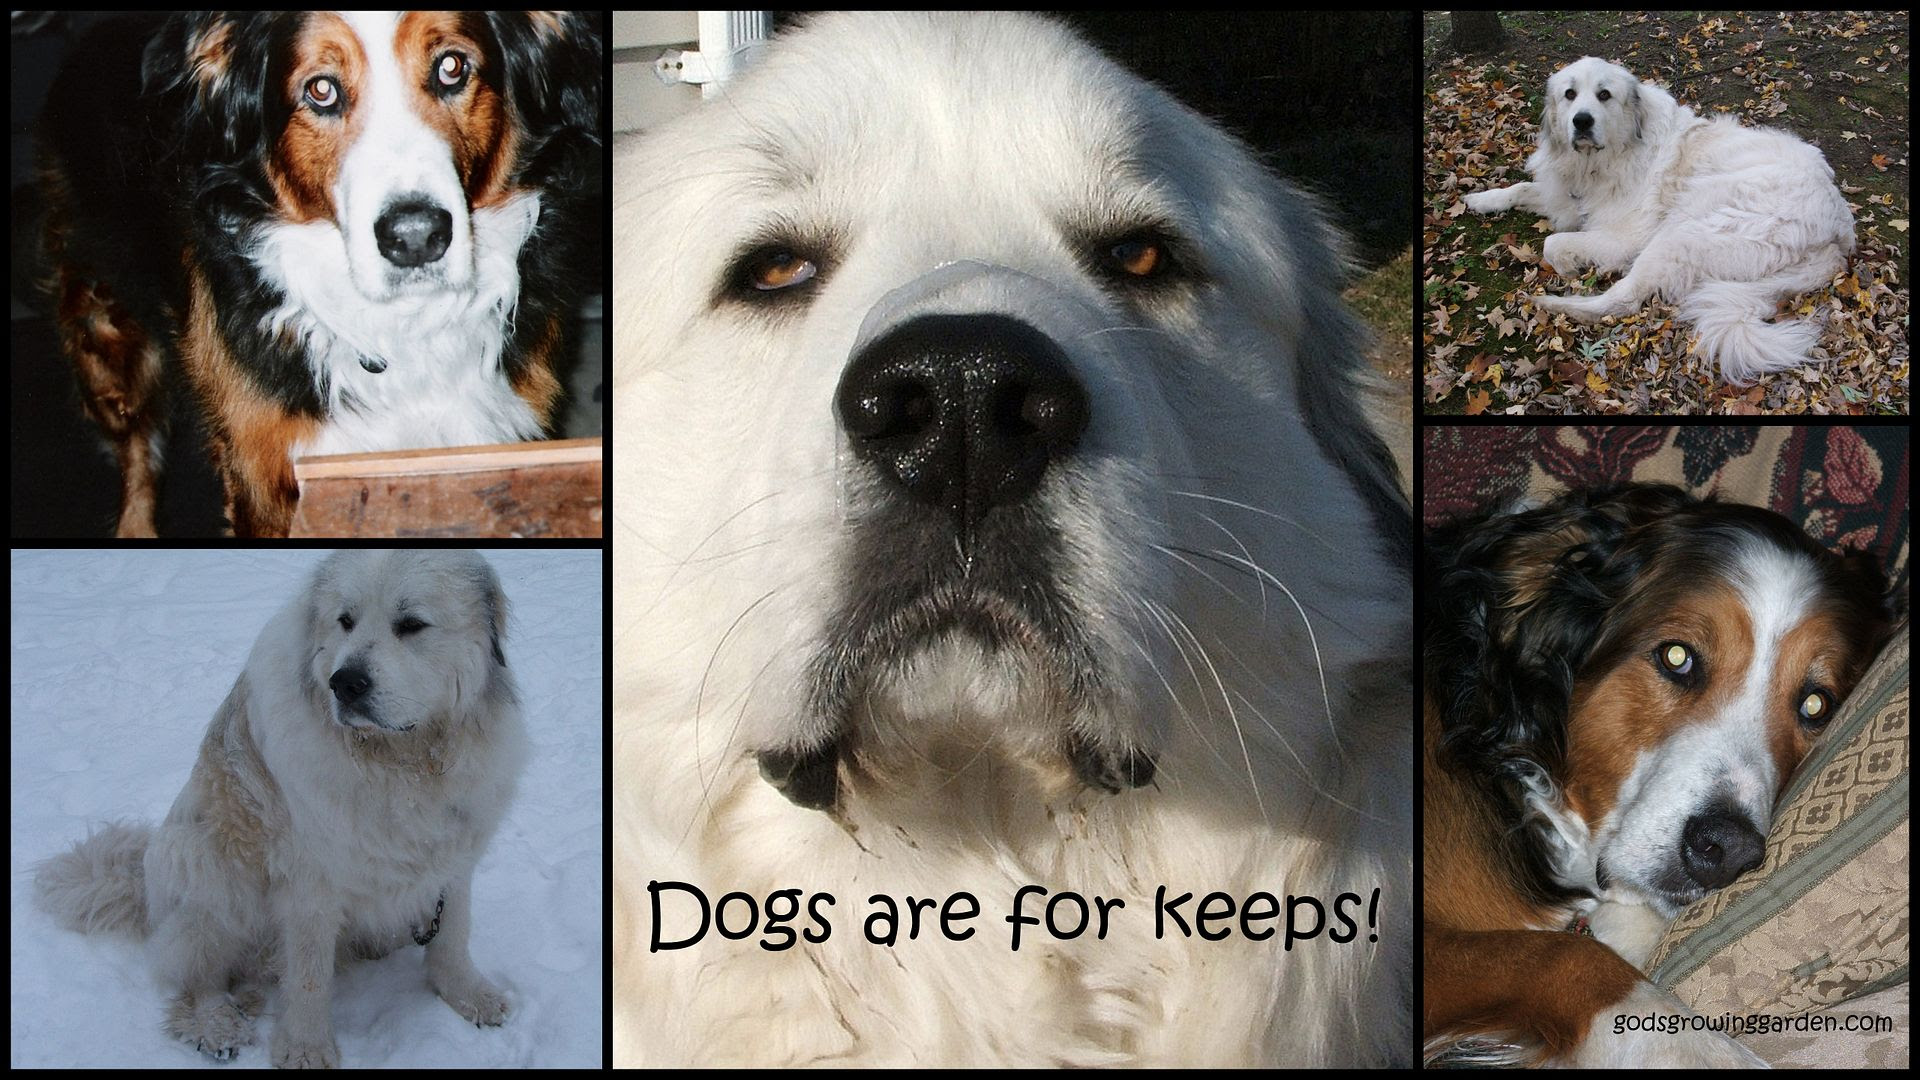 Dogs are for keeps by Angie Ouellette-Tower for godsgrowinggardencom/ photo 2009AnimalKids_zps70fade41.jpg